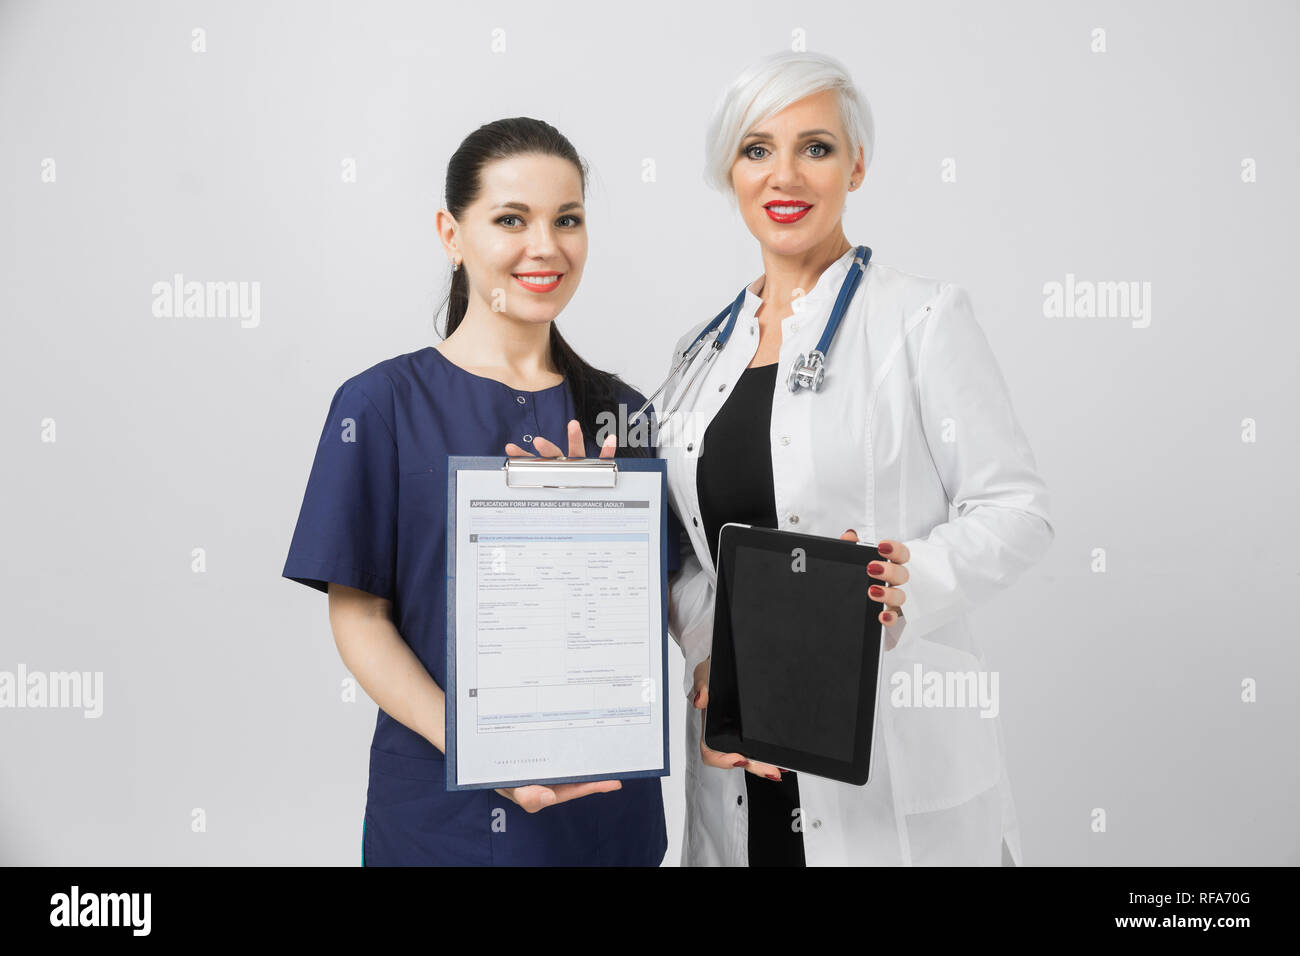 Two female doctors with tablet and sheet with analysis in hands isolated on white background - Stock Image